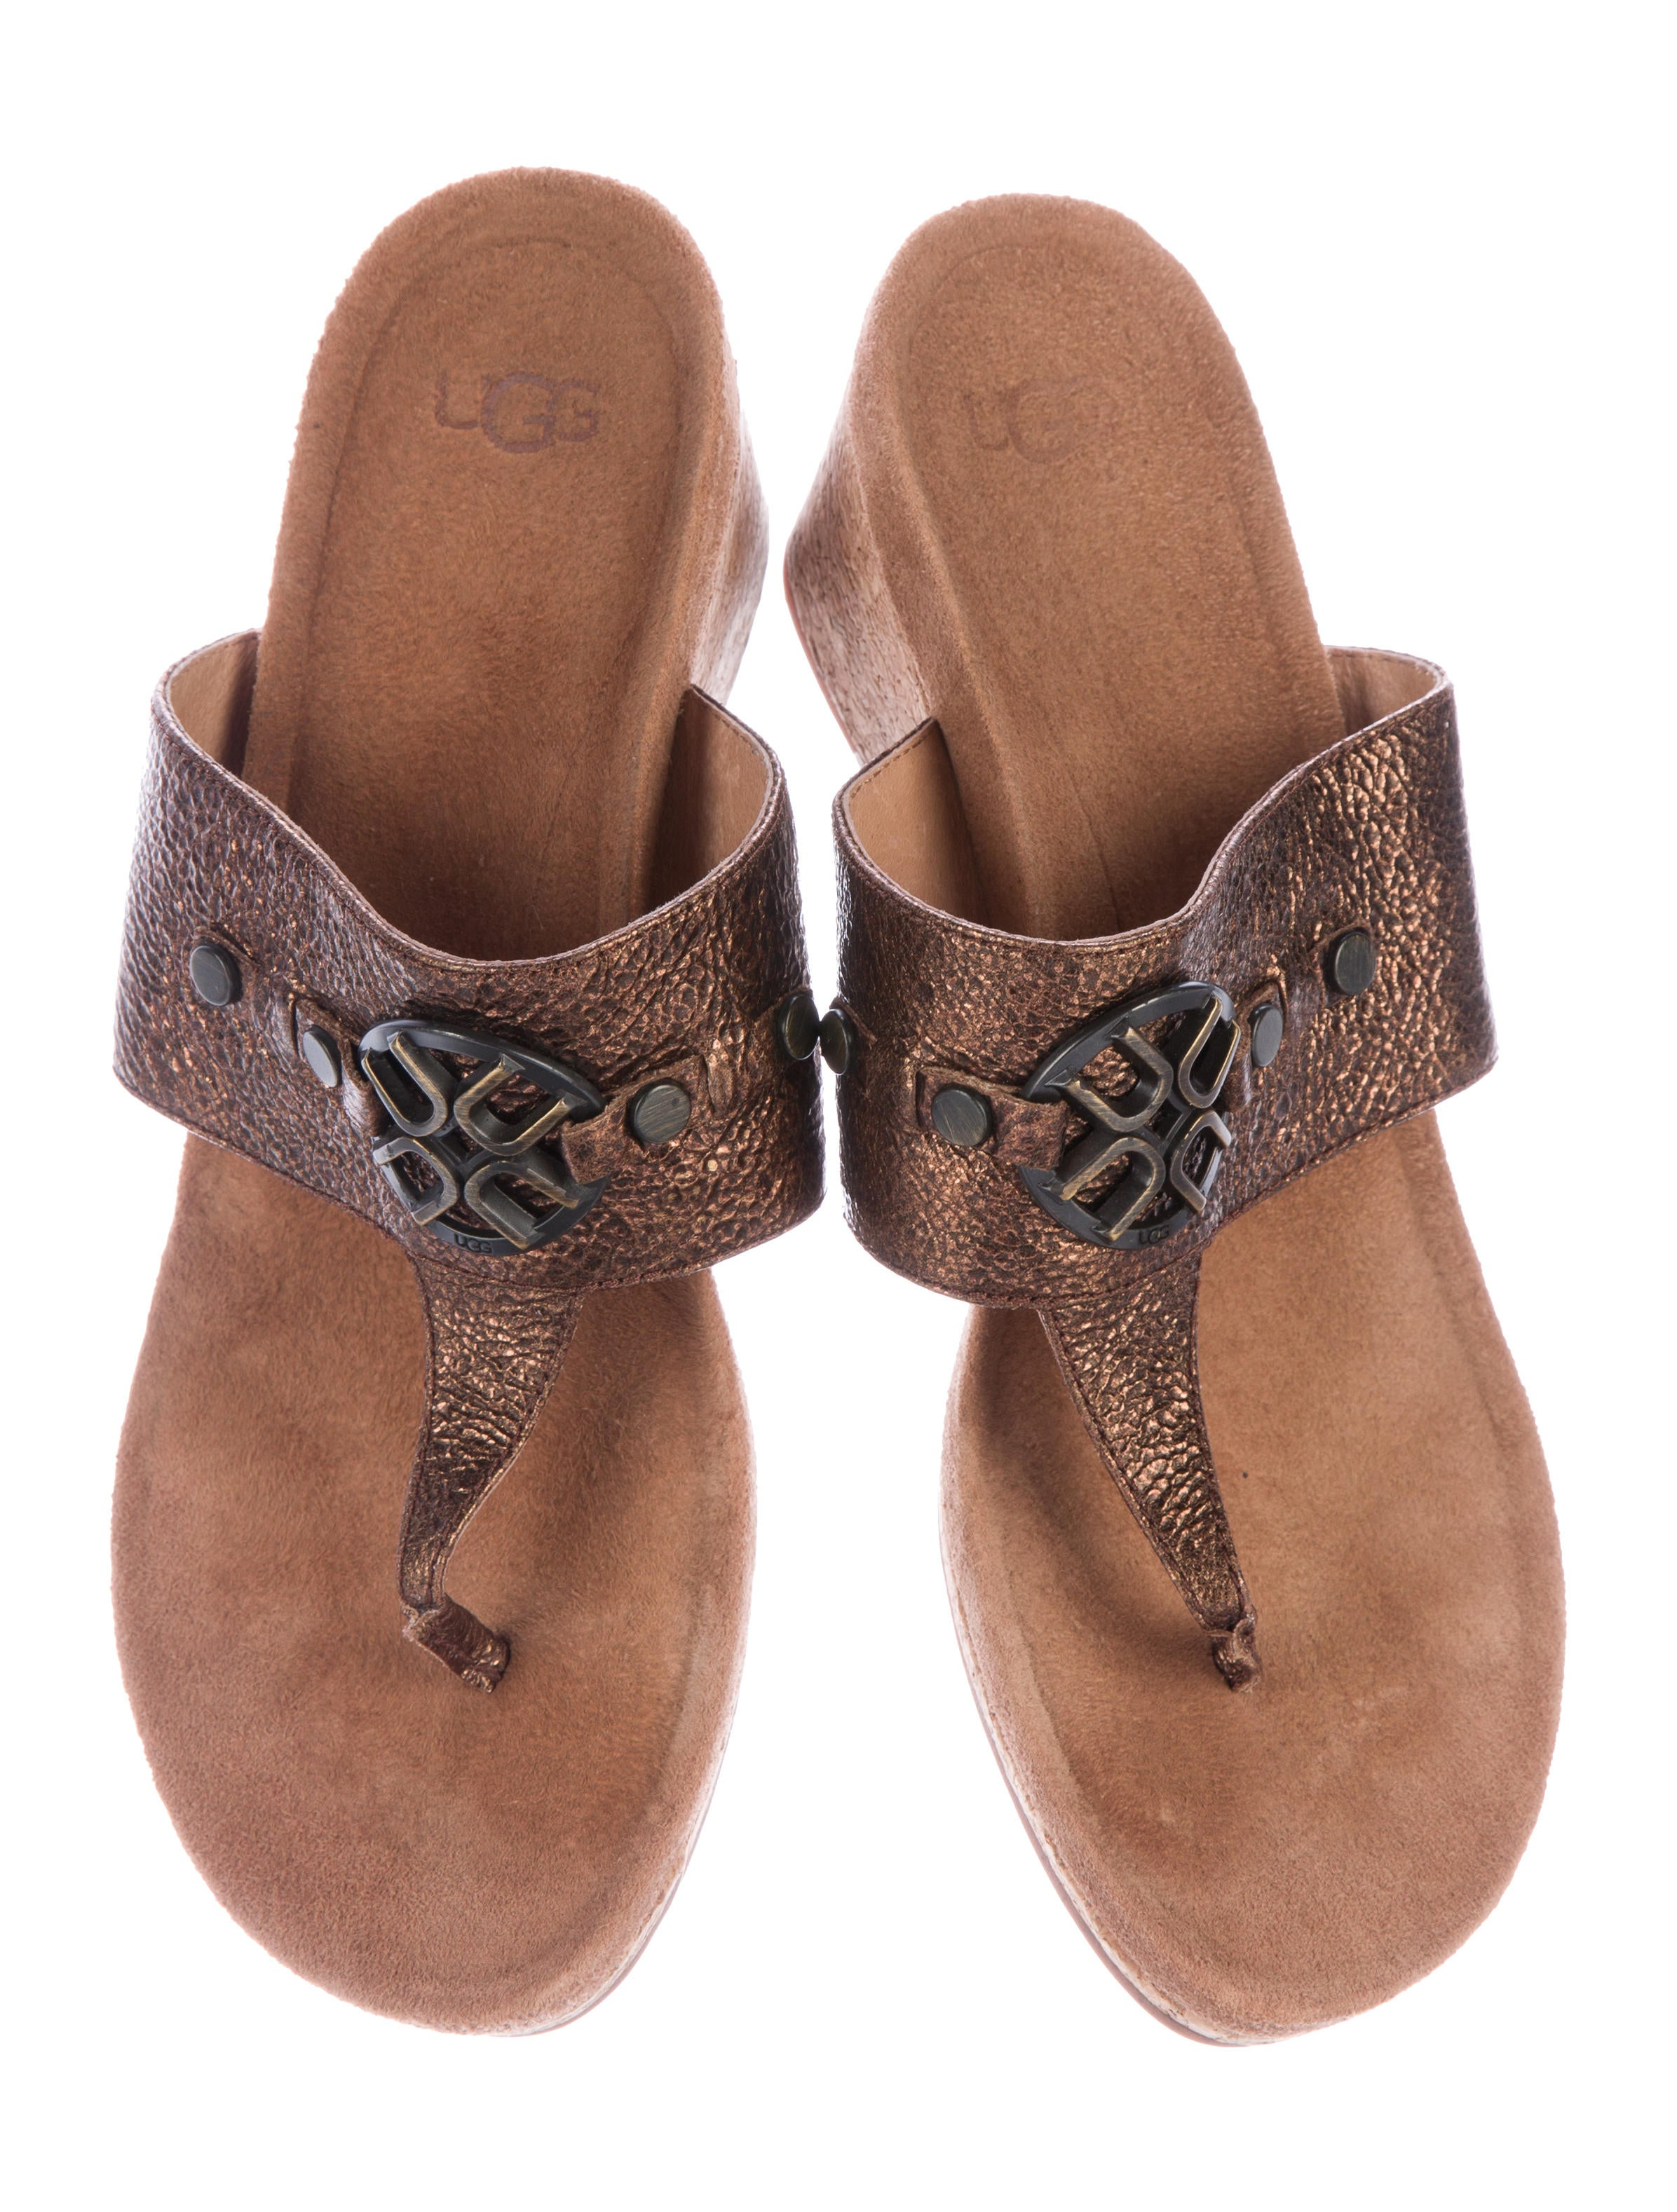 Ugg Australia Leather Thong Sandals Shoes Wuugg21890